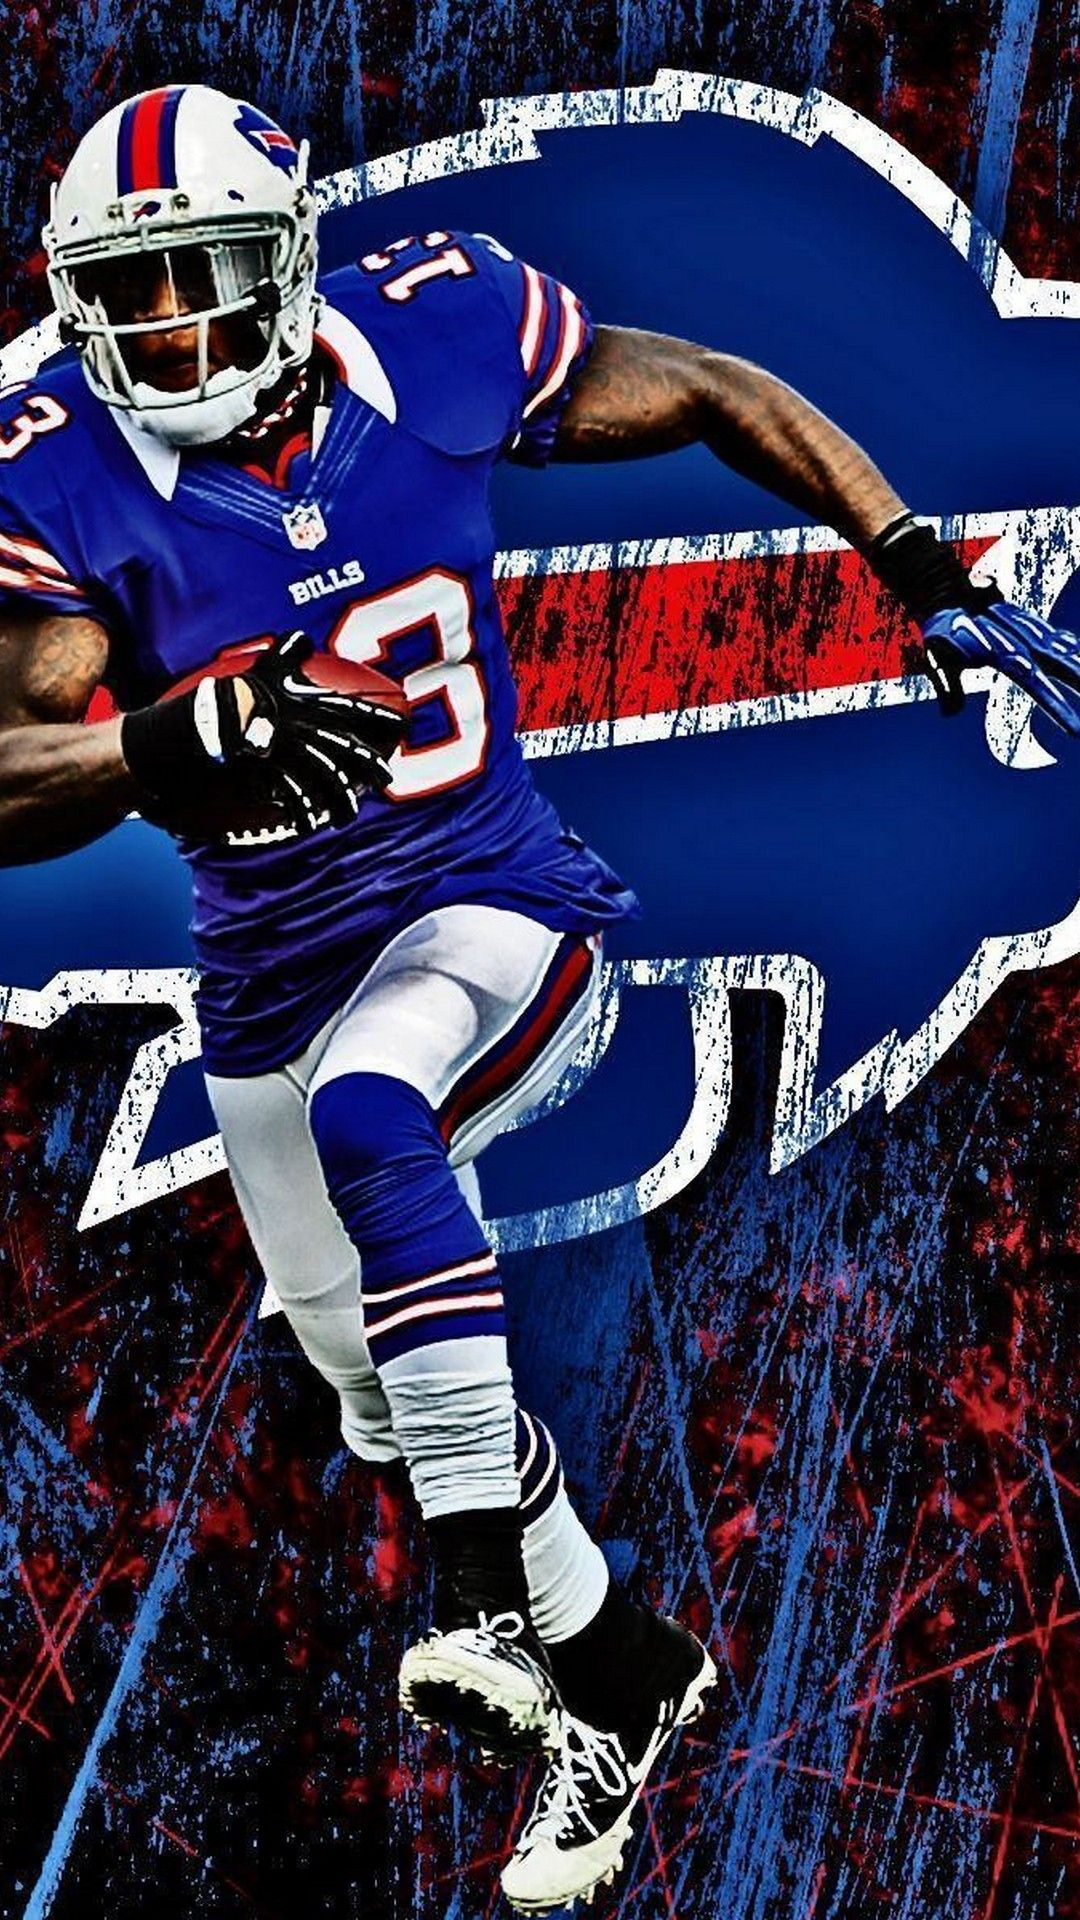 Buffalo Bills Iphone Wallpaper Lock Screen Best Nfl Wallpaper Deportes